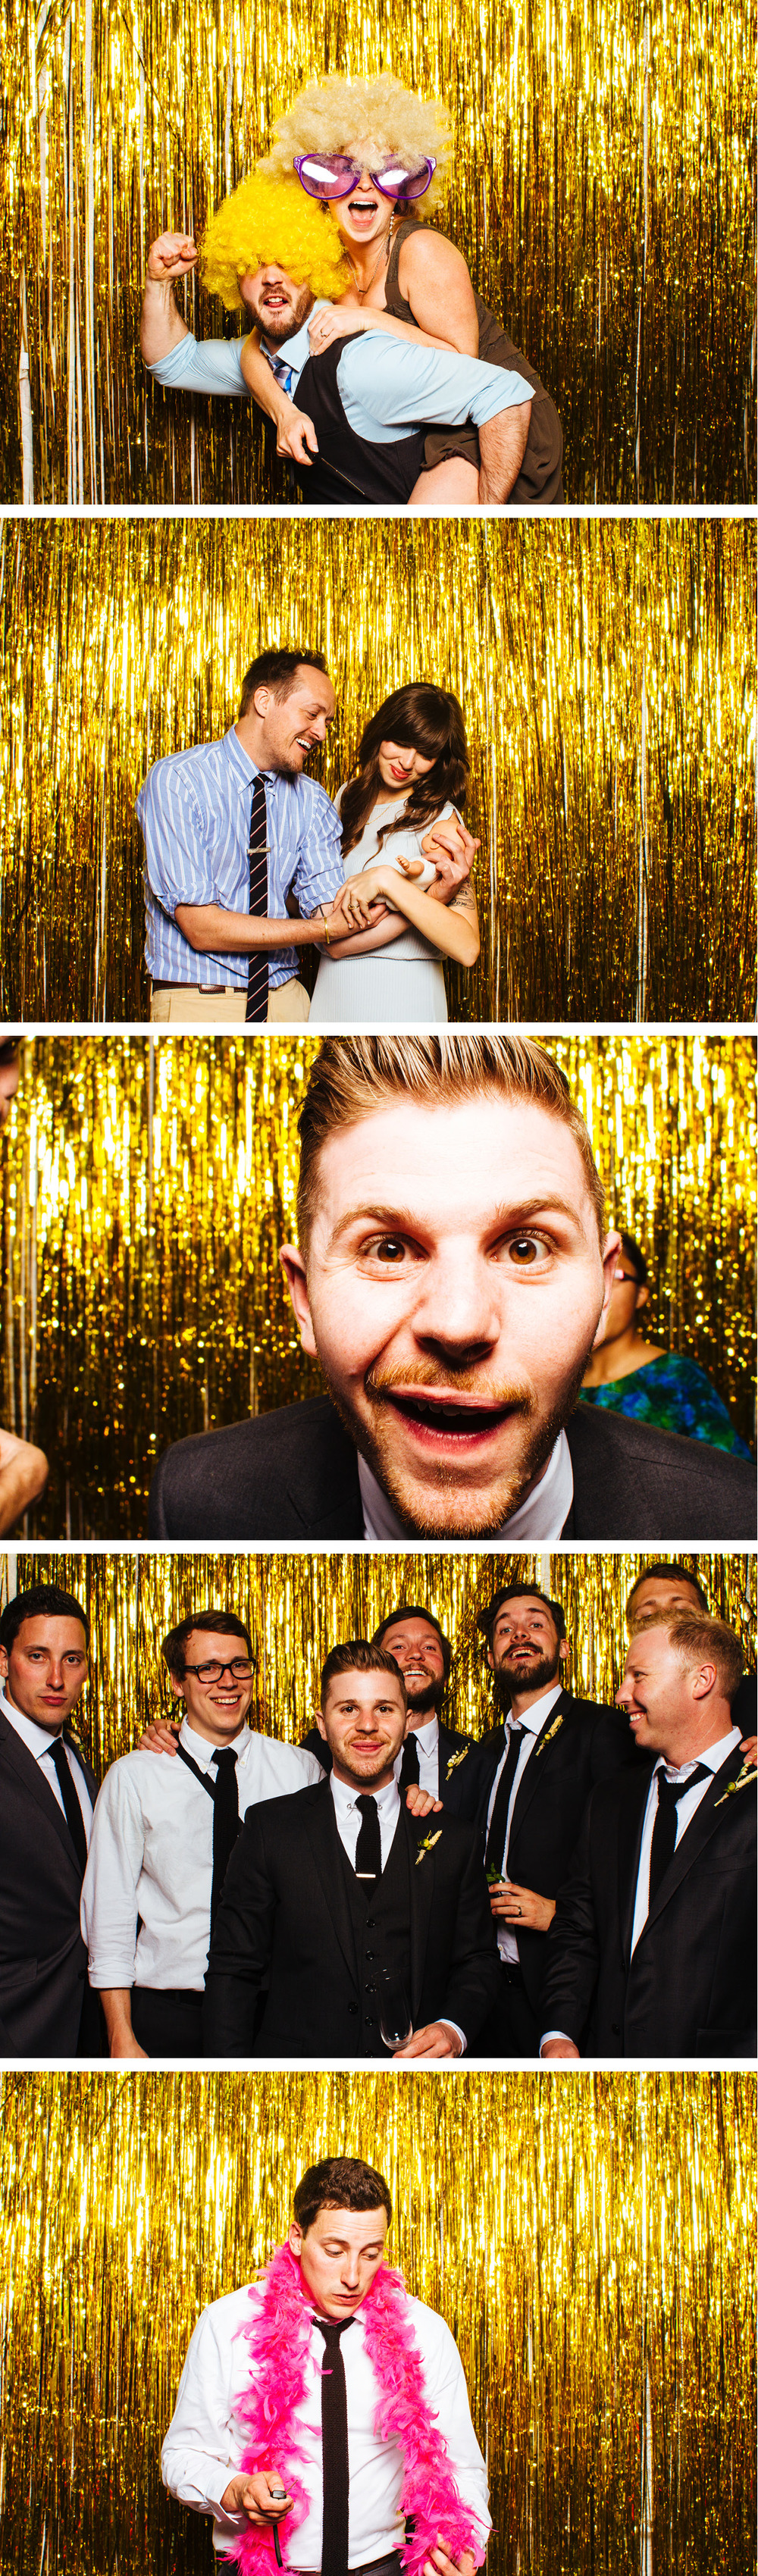 CK-Photo-Nashville-Wedding-Photographer-Photobooth-DL2.jpg